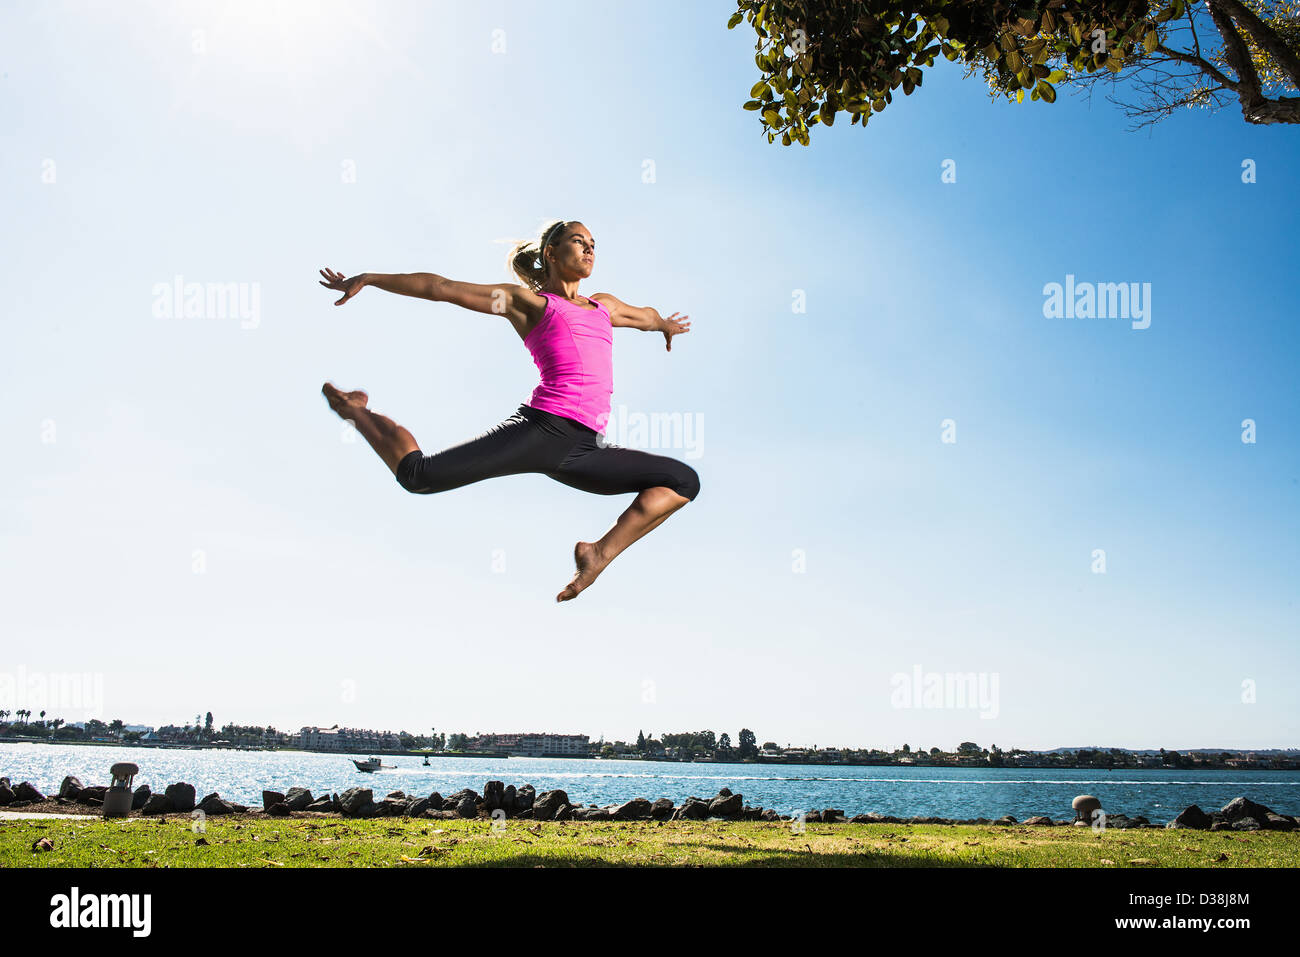 Woman leaping in park - Stock Image